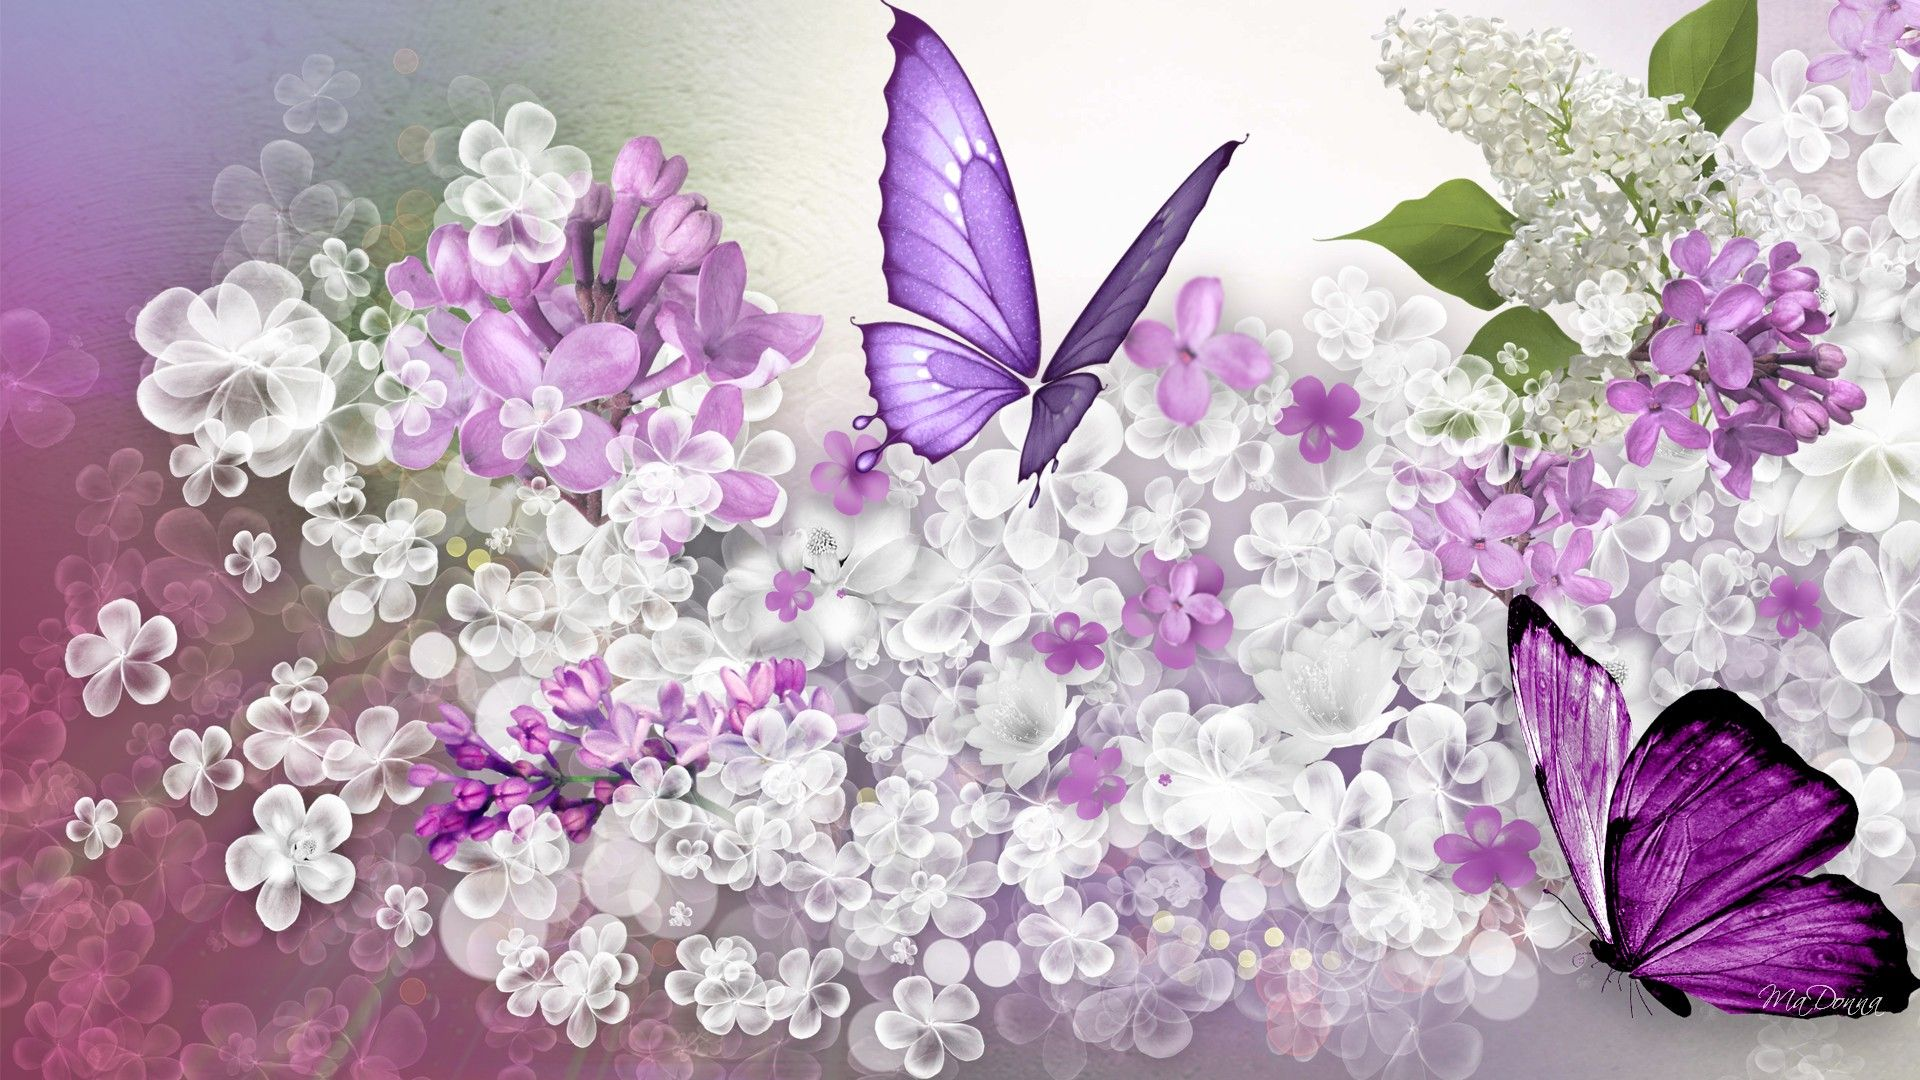 b lilac b flowers windows 8 1 theme and pictures all for windows